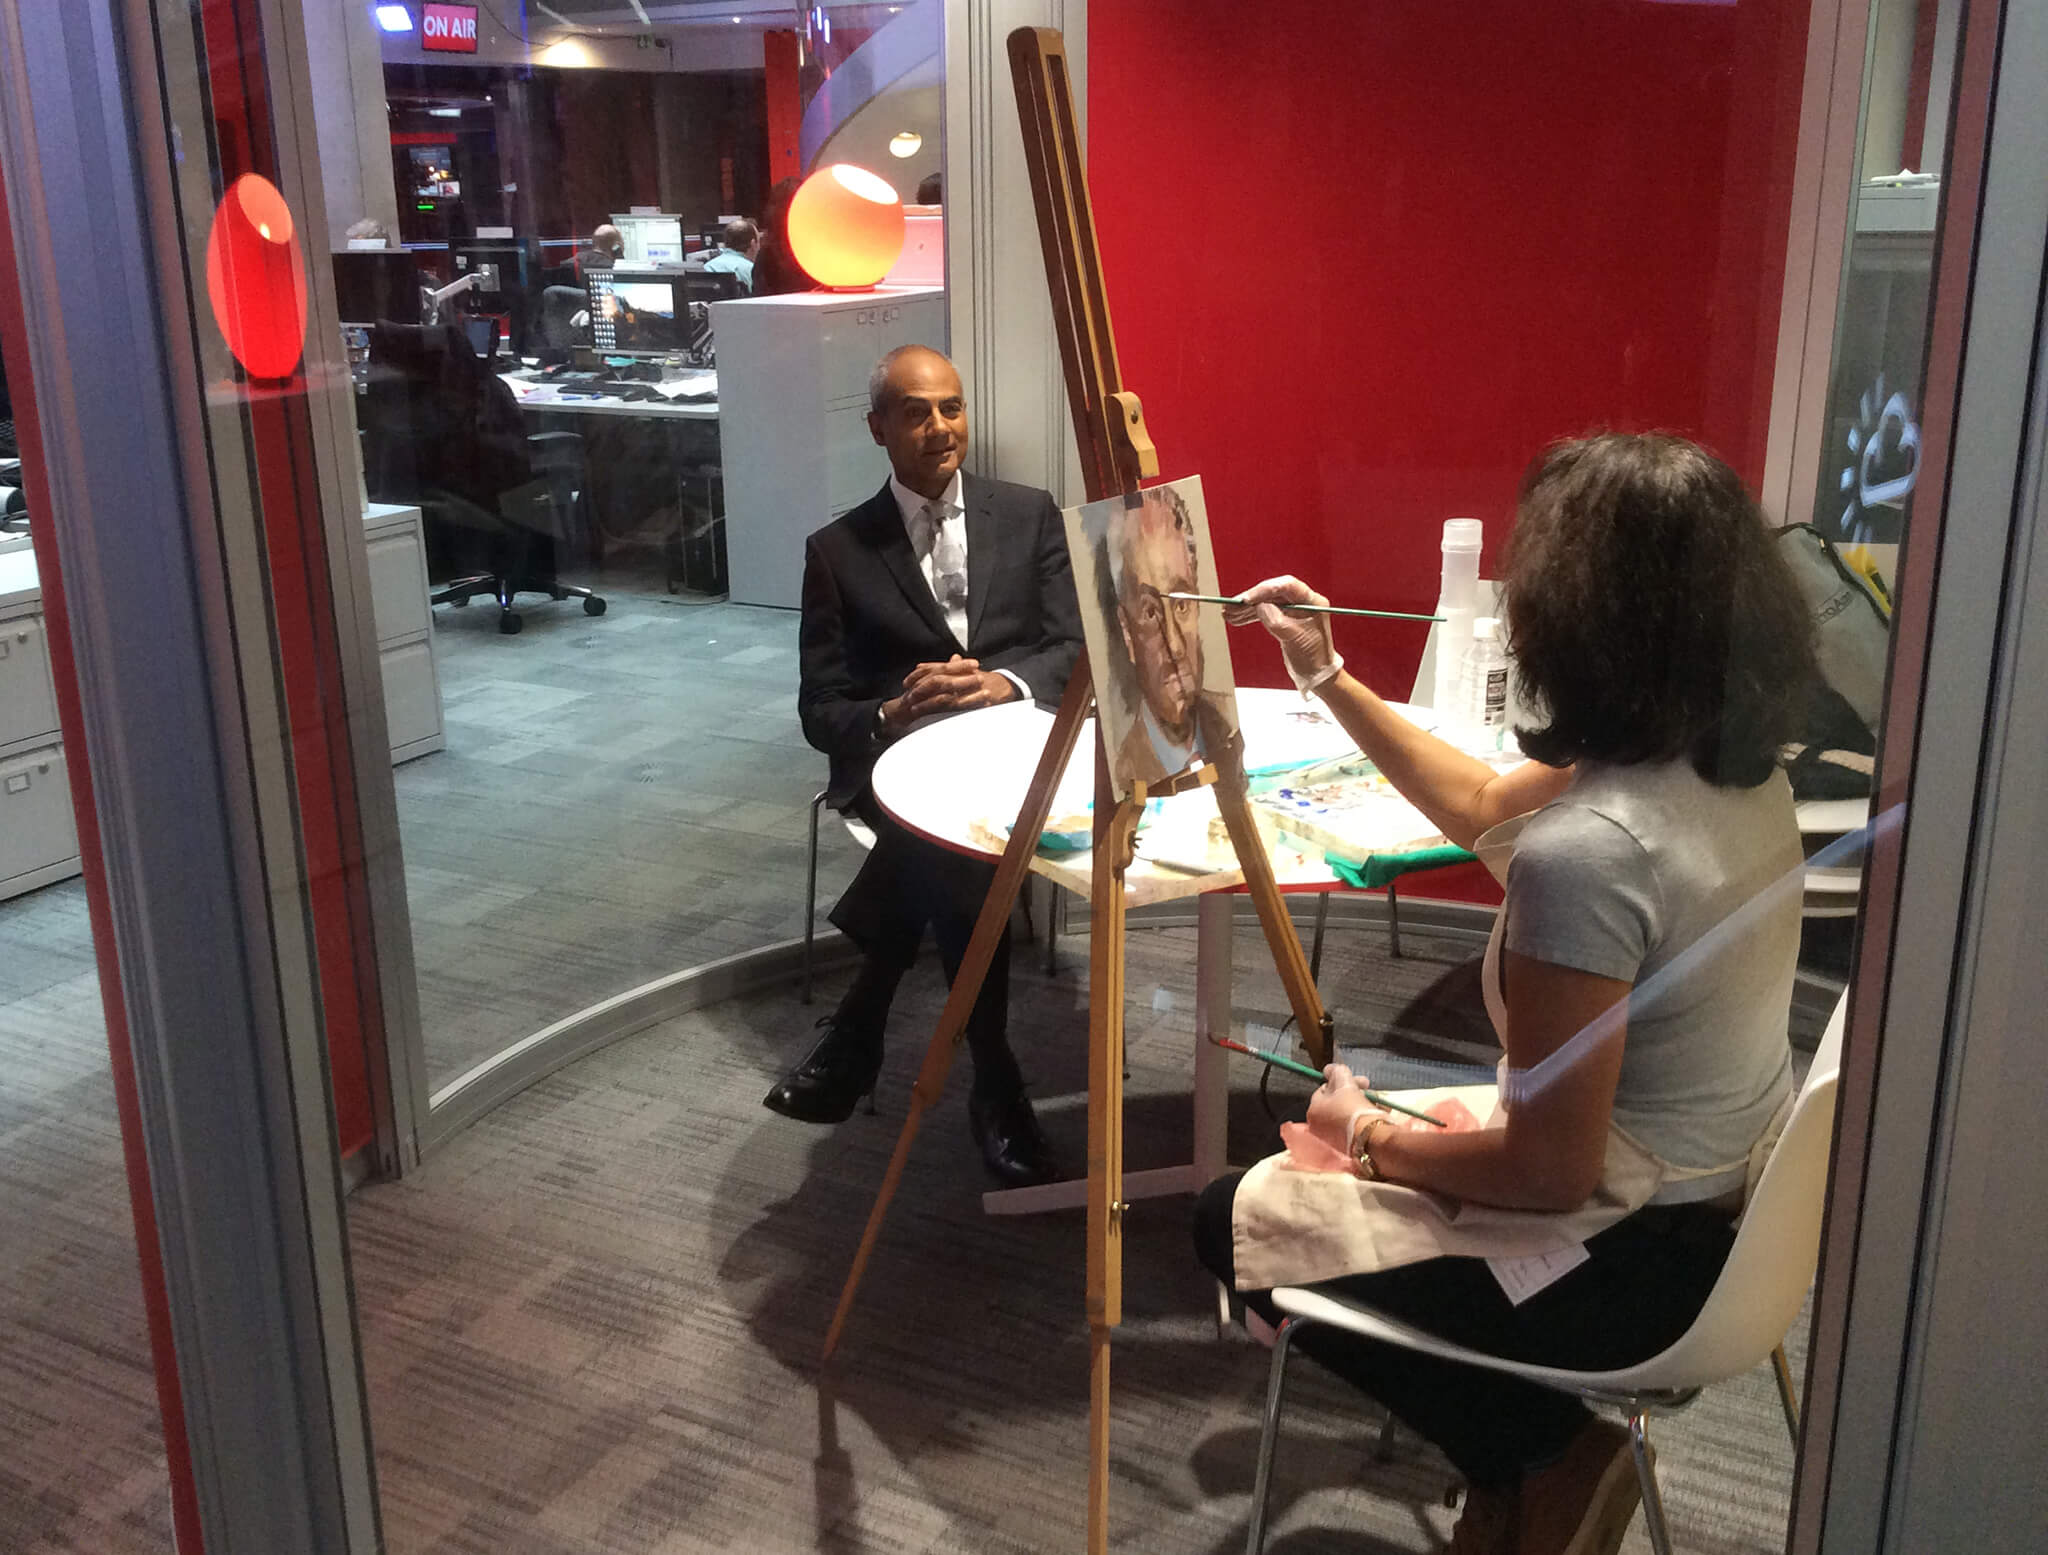 Artist Stella Tooth painting oil study on canvas board of BBC's George Alagiah in the BBC Newsroom.